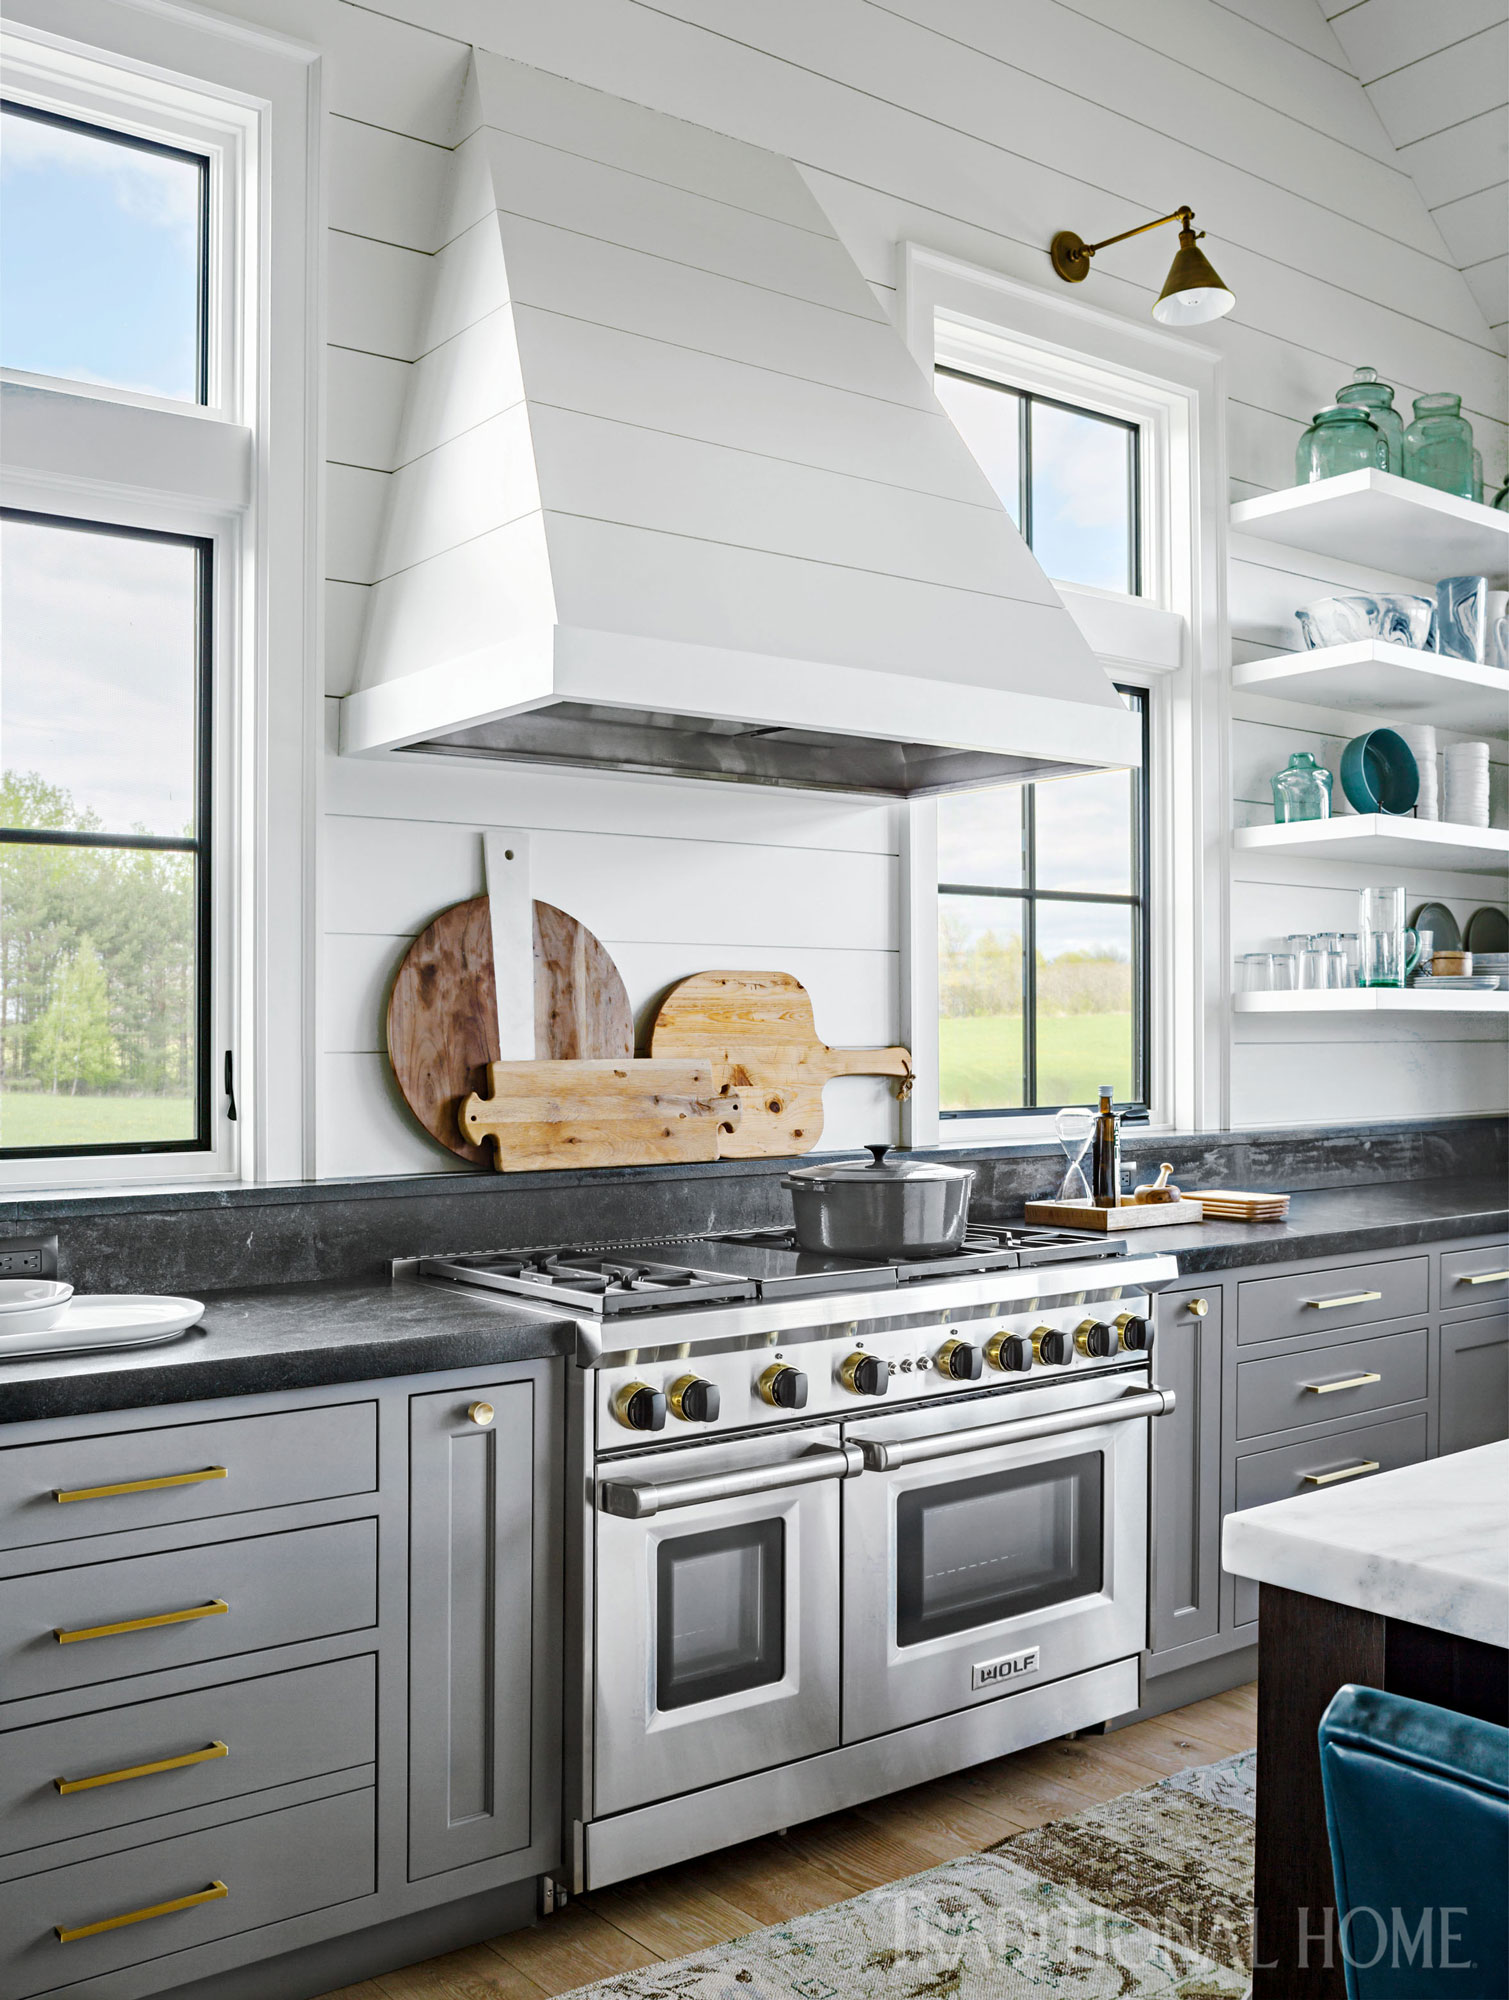 House Kitchen Interior Design Pictures Vermont Home With Beautiful Farmhouse Style Traditional Home